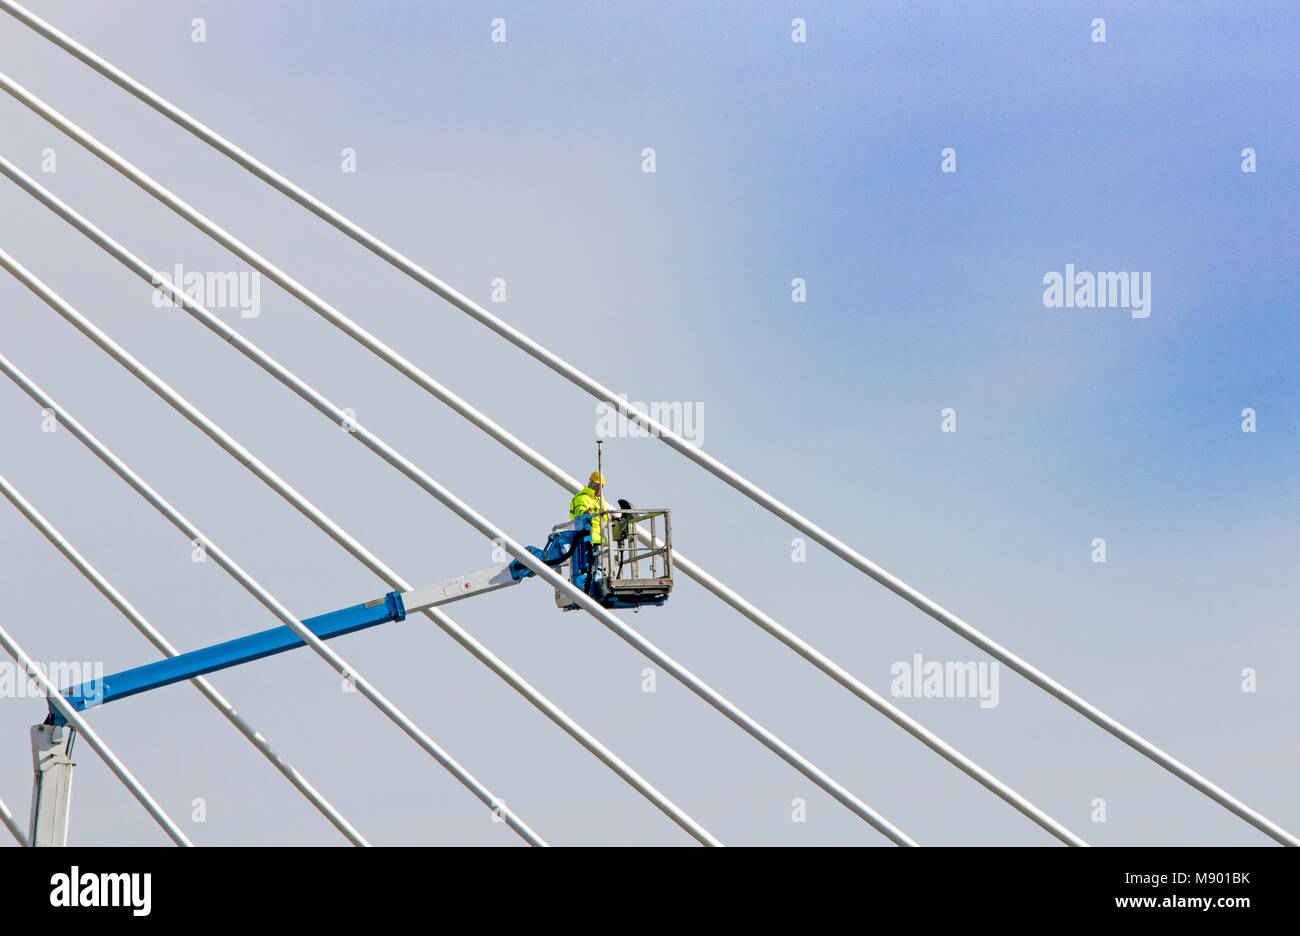 mobile elevated work platform telescopic construction worker working at height suspension bridge southport merseyside - Stock Image